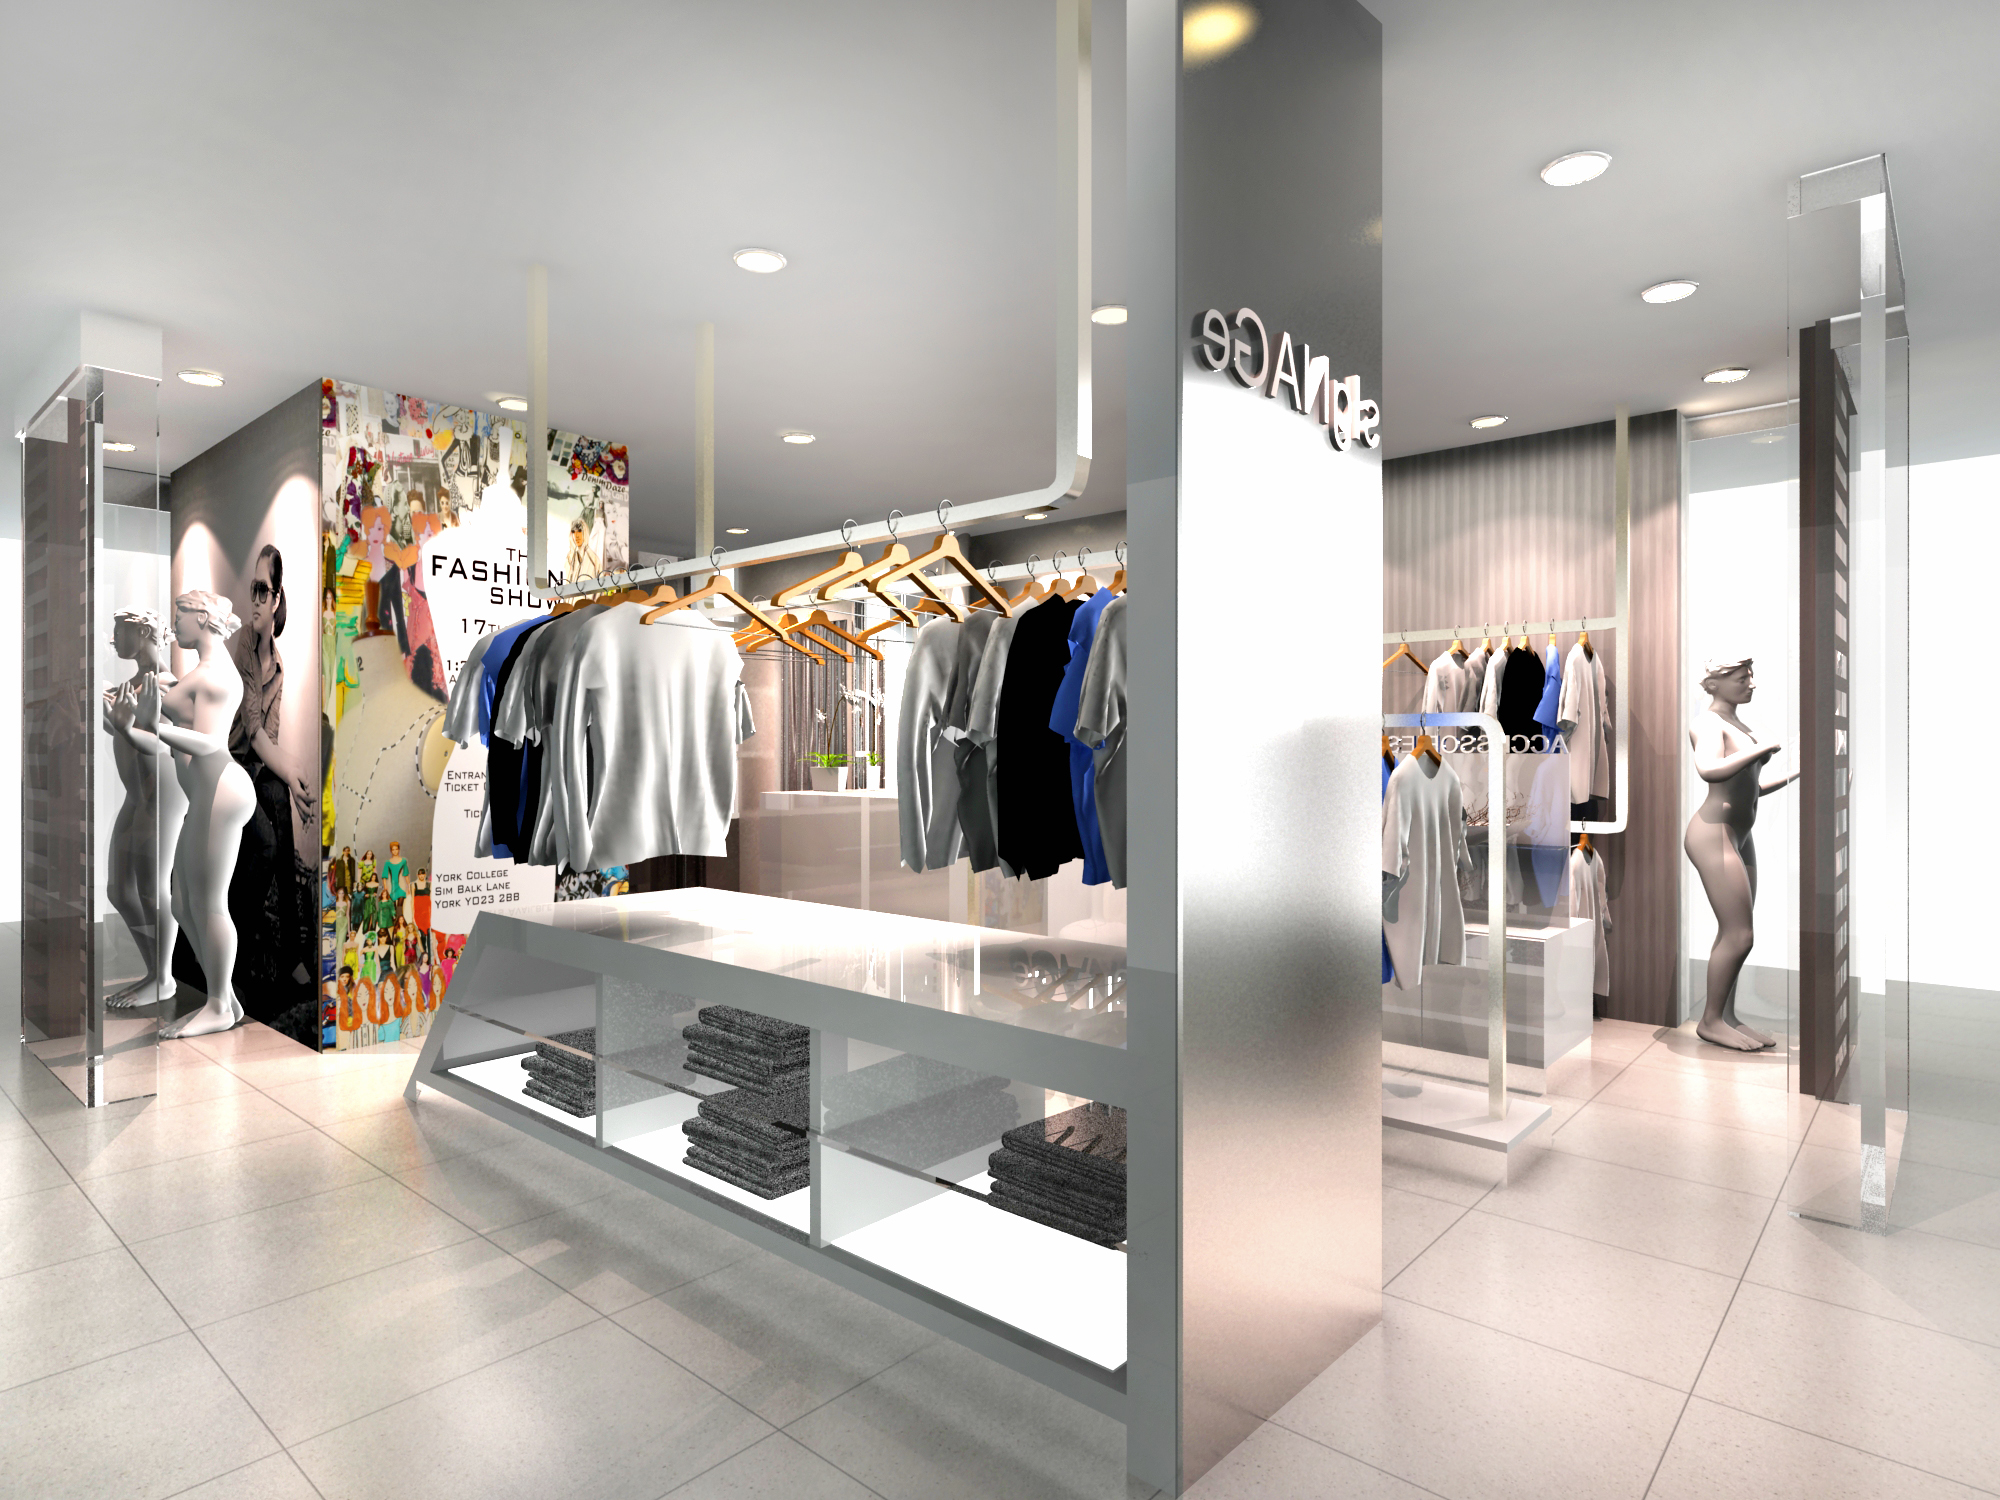 Merveilleux Design An Attractive Retail Store